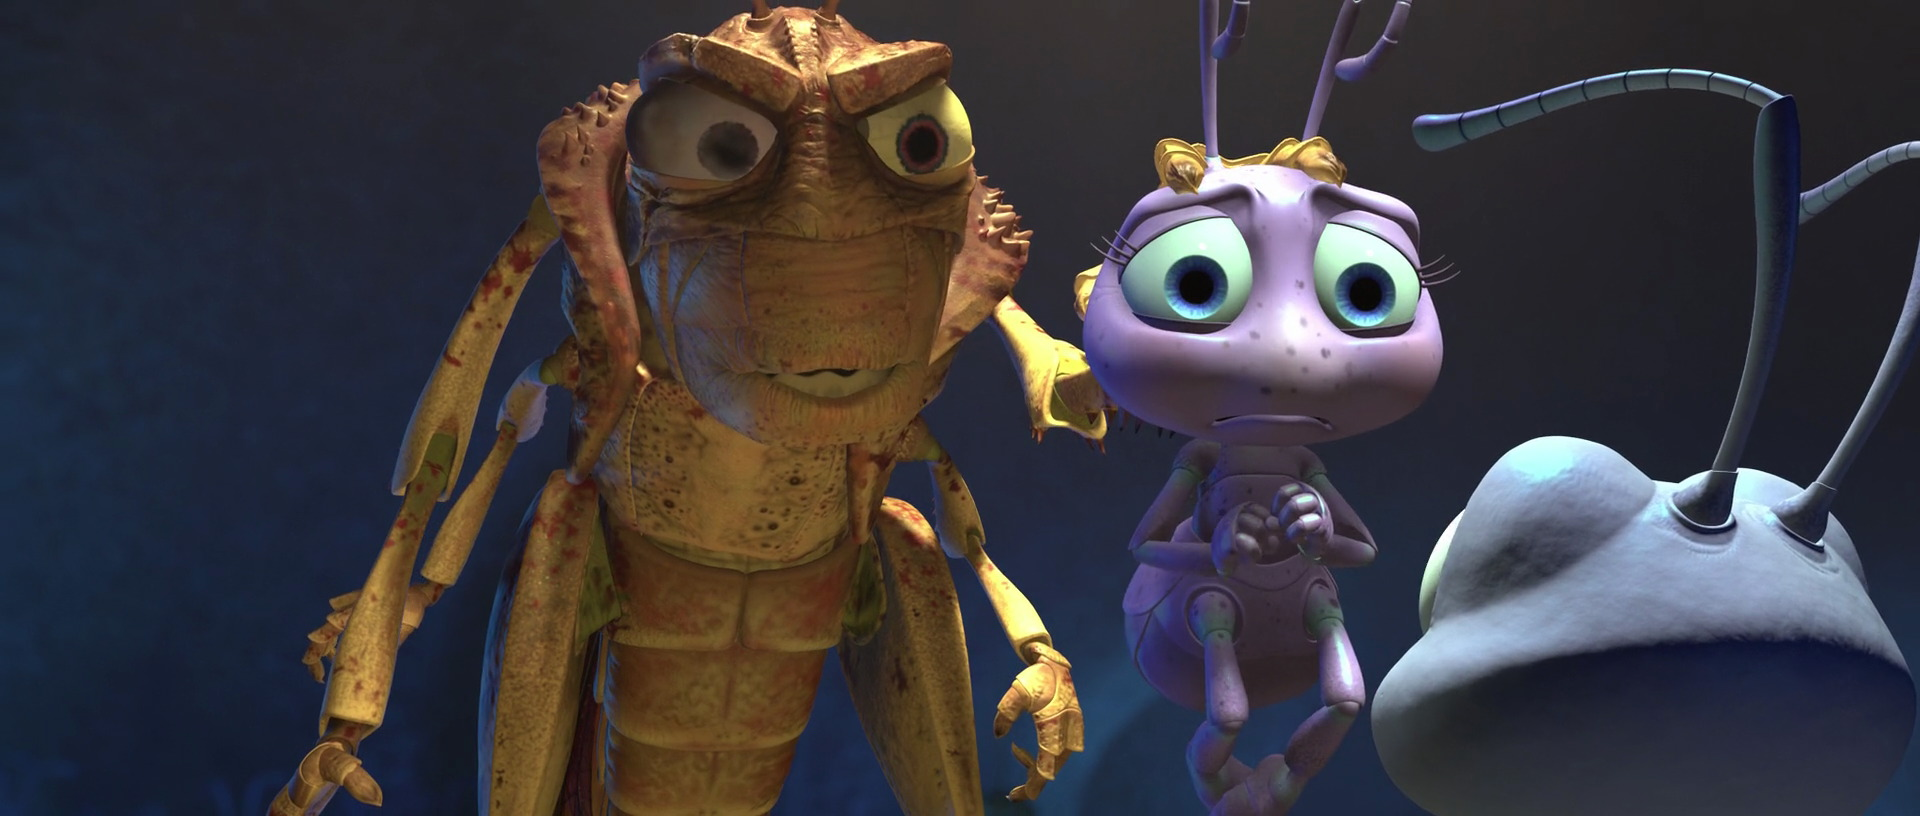 It's just a graphic of Zany Characters in a Bug's Life